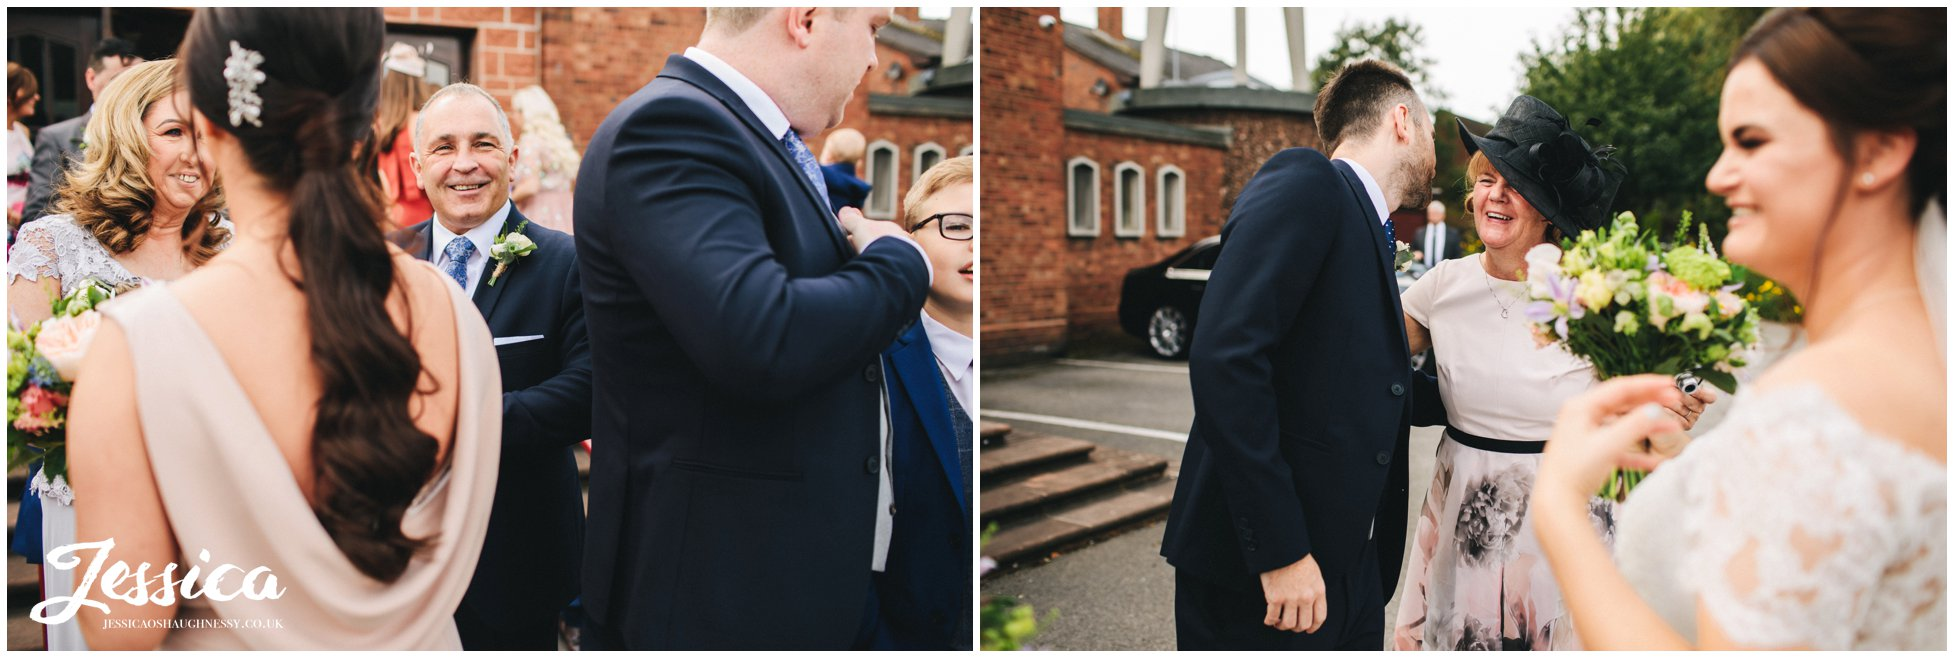 guests congratulate the newly wed's - liverpool wedding photographer